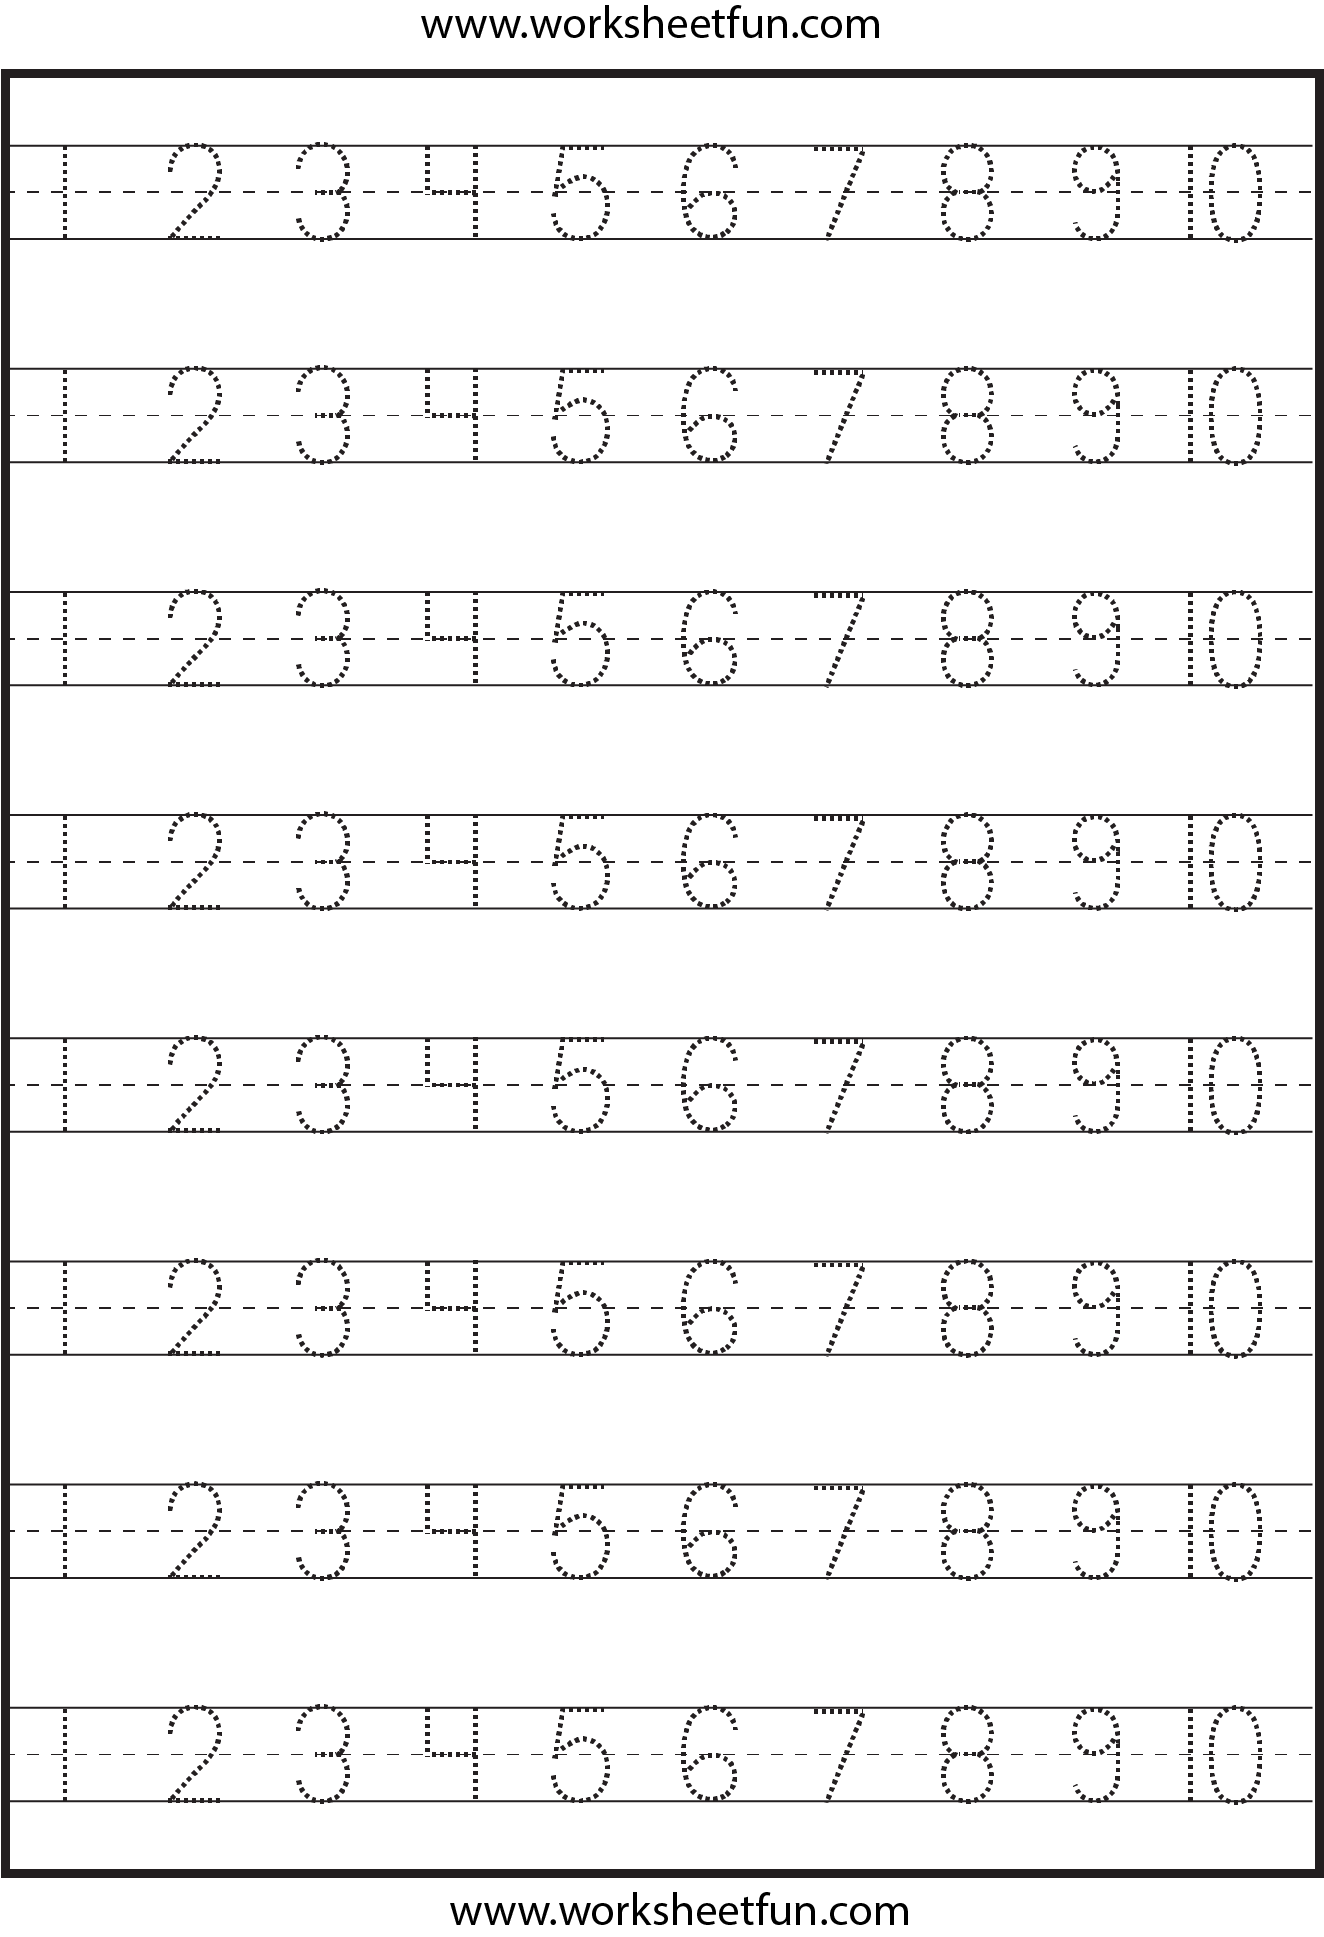 Number Tracing 1 10 Worksheet Free Printable Worksheets Worksheetfun